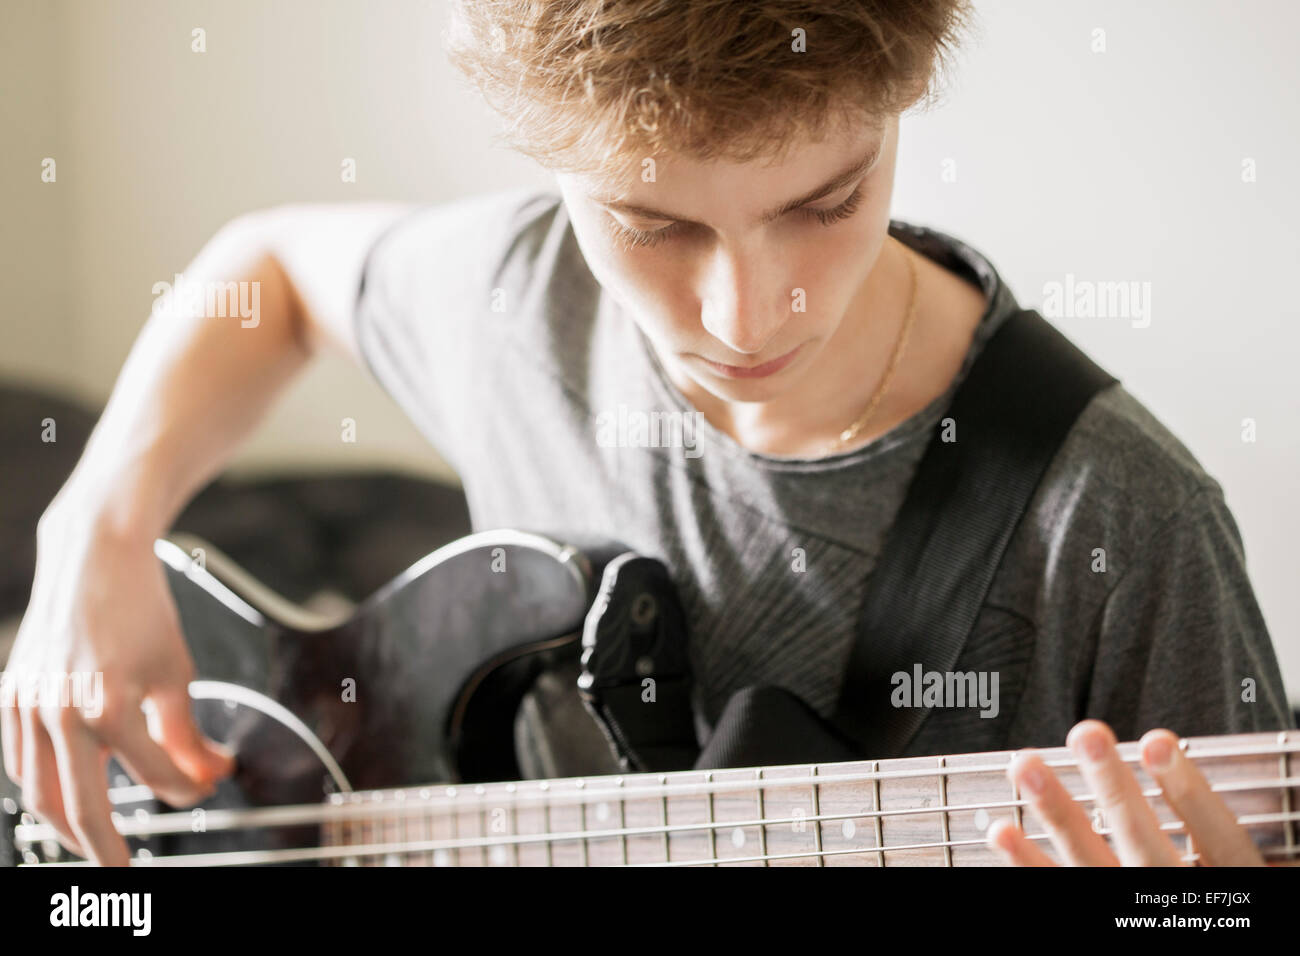 Teenage boy playing a guitar - Stock Image